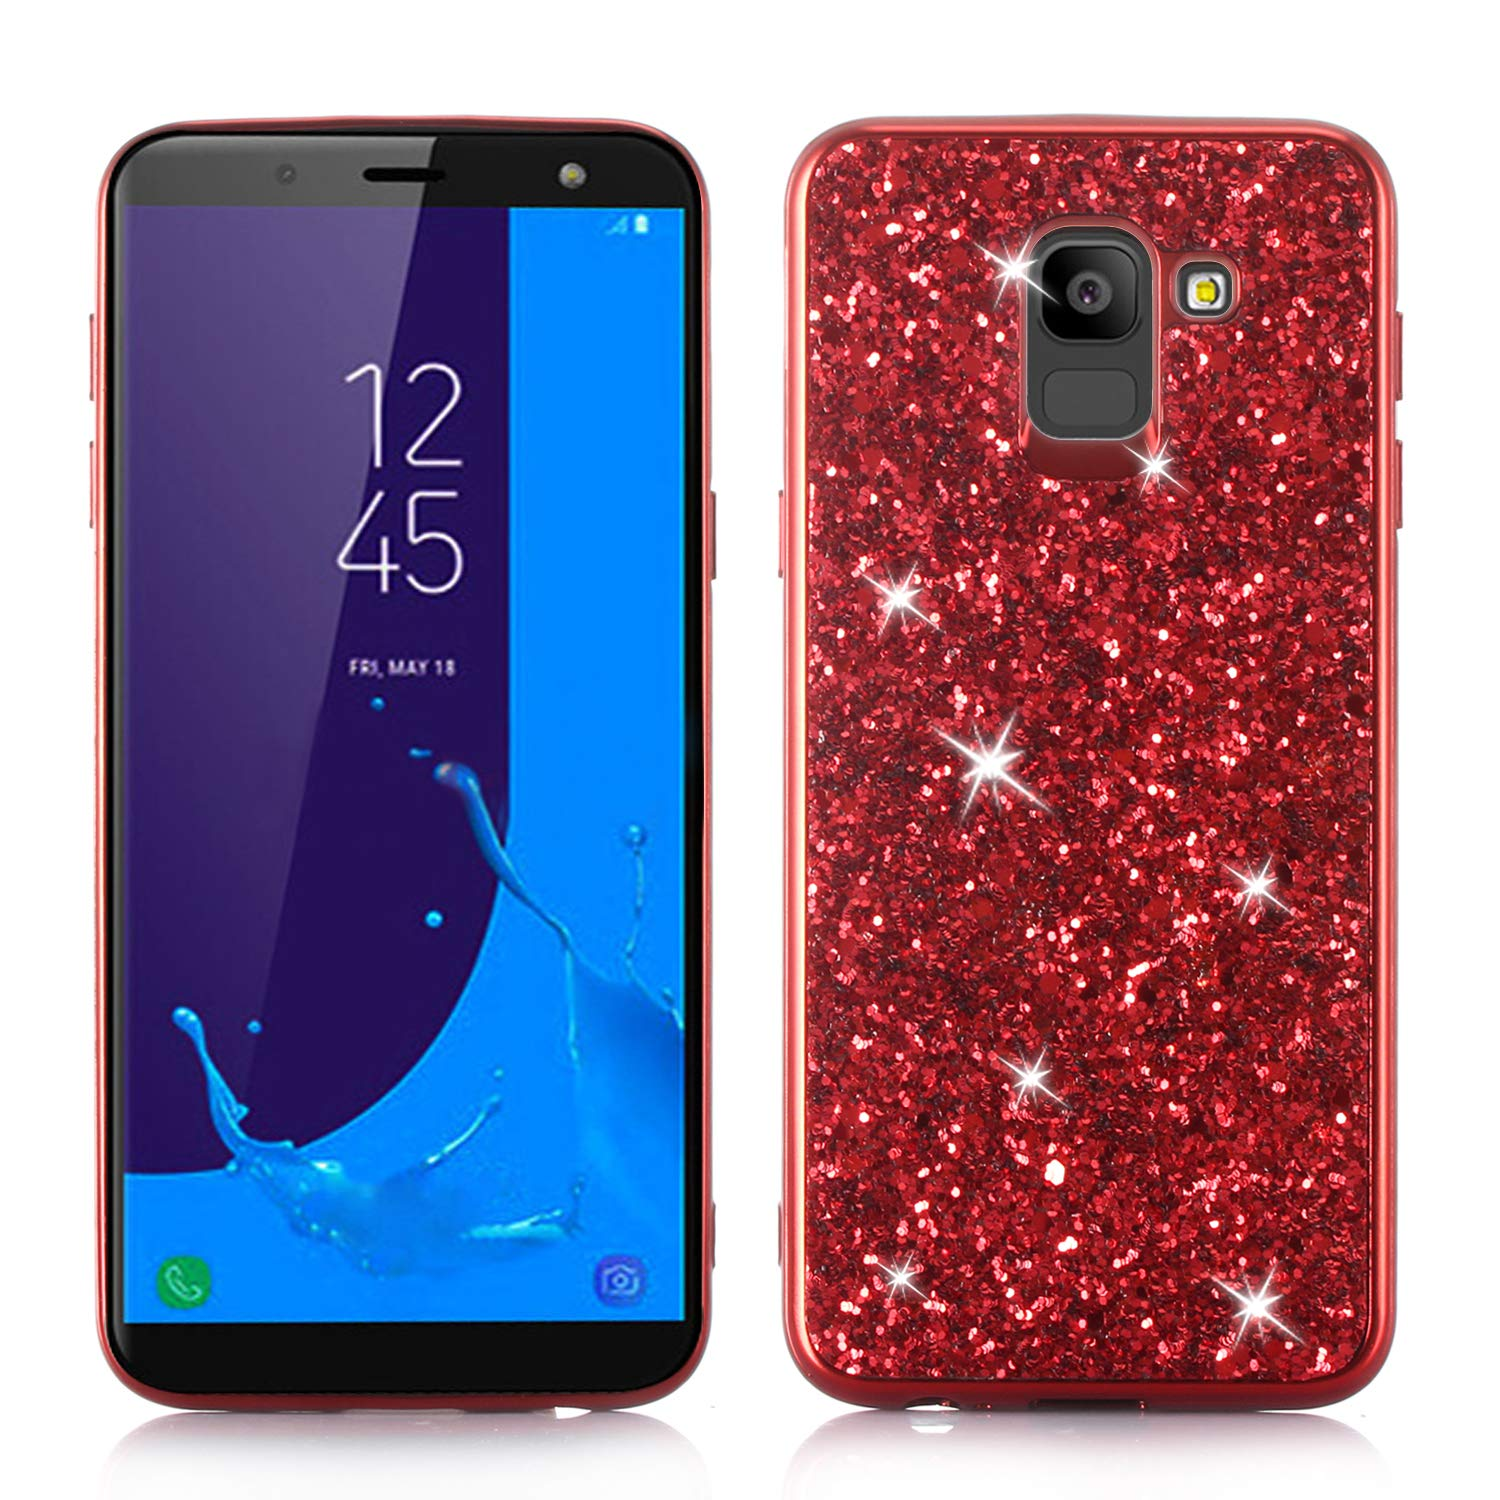 Nadoli Glitter Coque pour Galaxy J6 2018, Or Silicone Gel Brillant Bling Mince Slim Housse Couverture É tui de Protection Rigide Cover Shell pour Samsung Galaxy J6 2018, Or